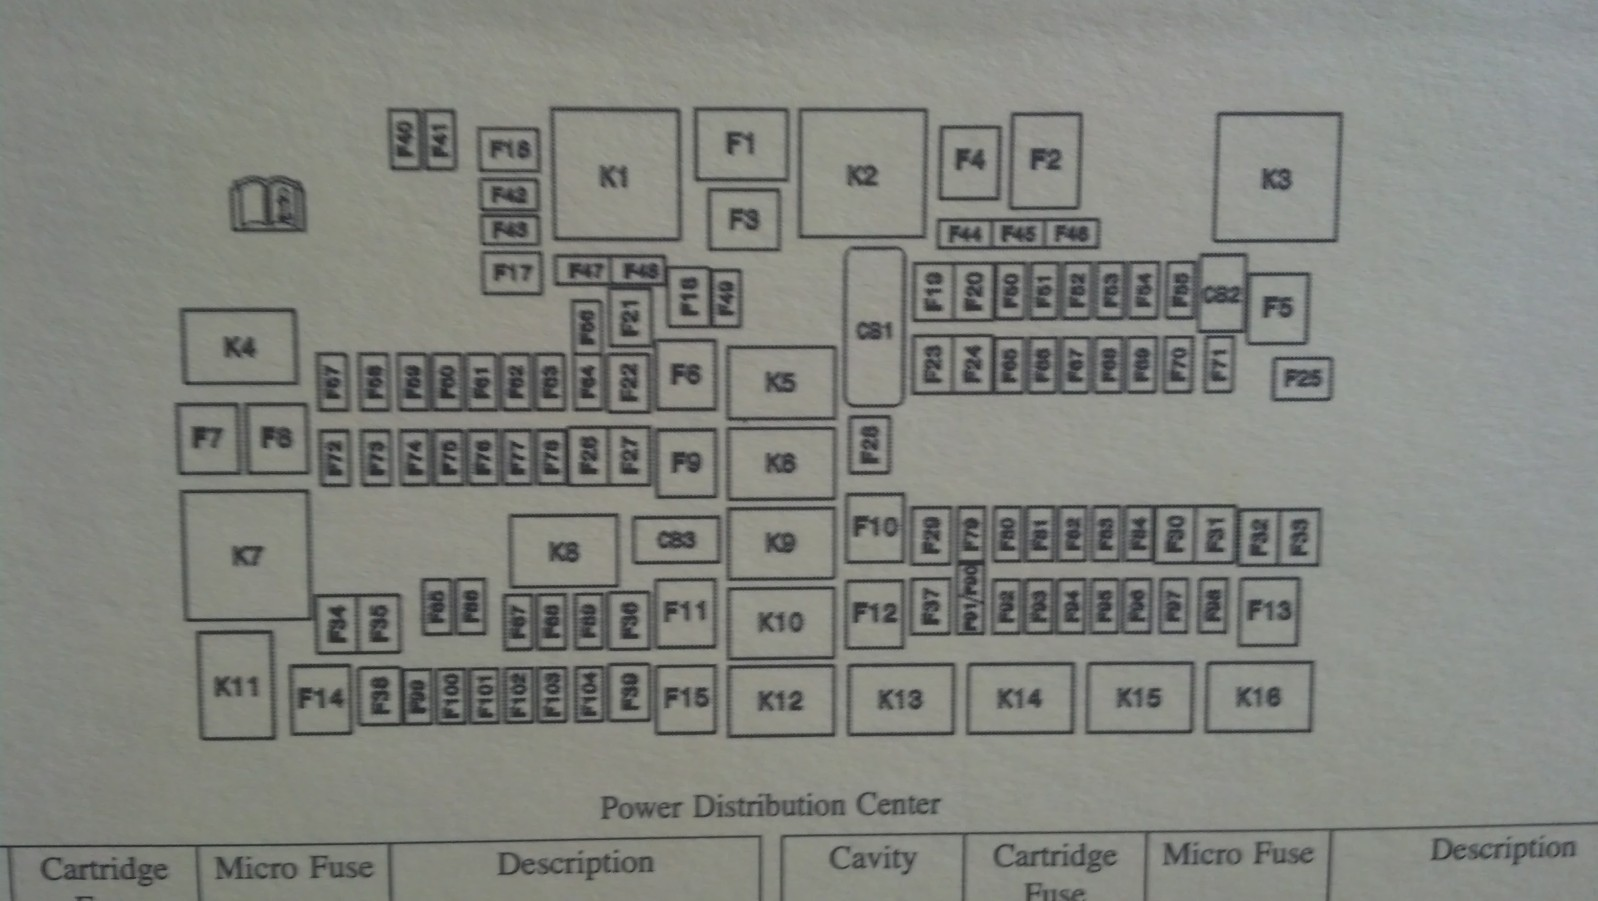 2013 dodge ram fuse box - wiring diagram loot-warehouse -  loot-warehouse.pmov2019.it  pmov2019.it